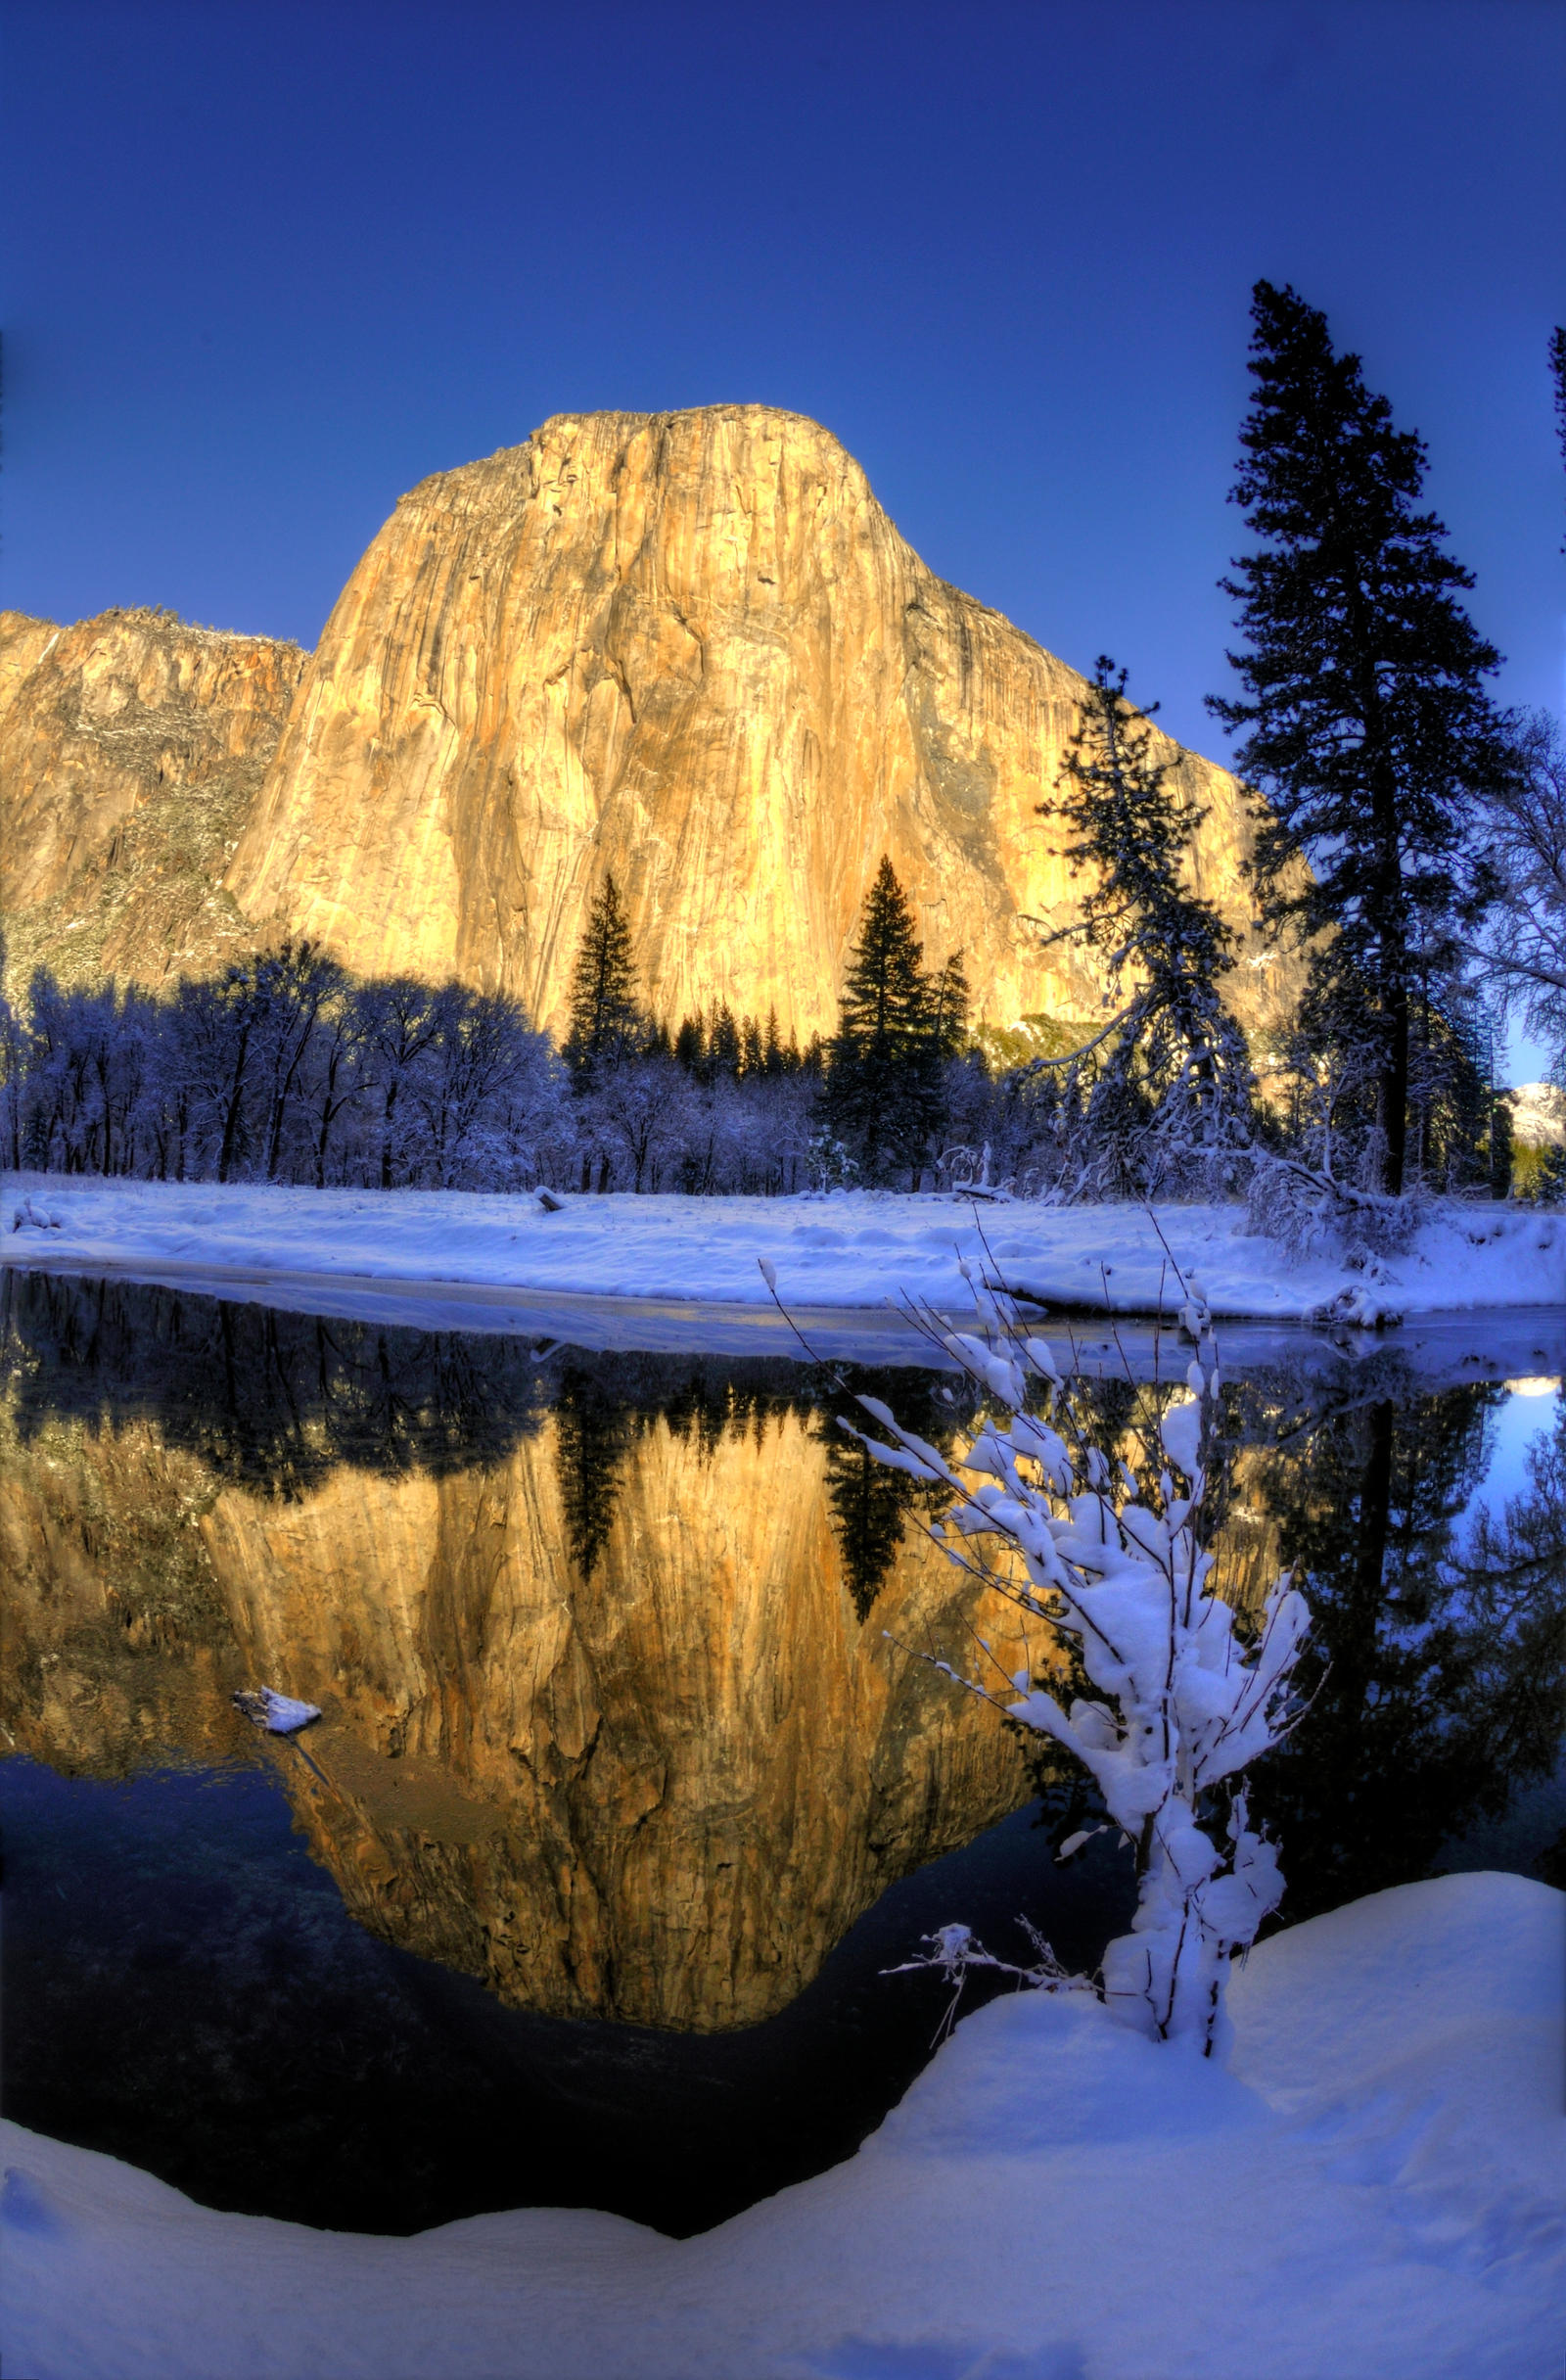 Yosemite Winter 3 by merzlak